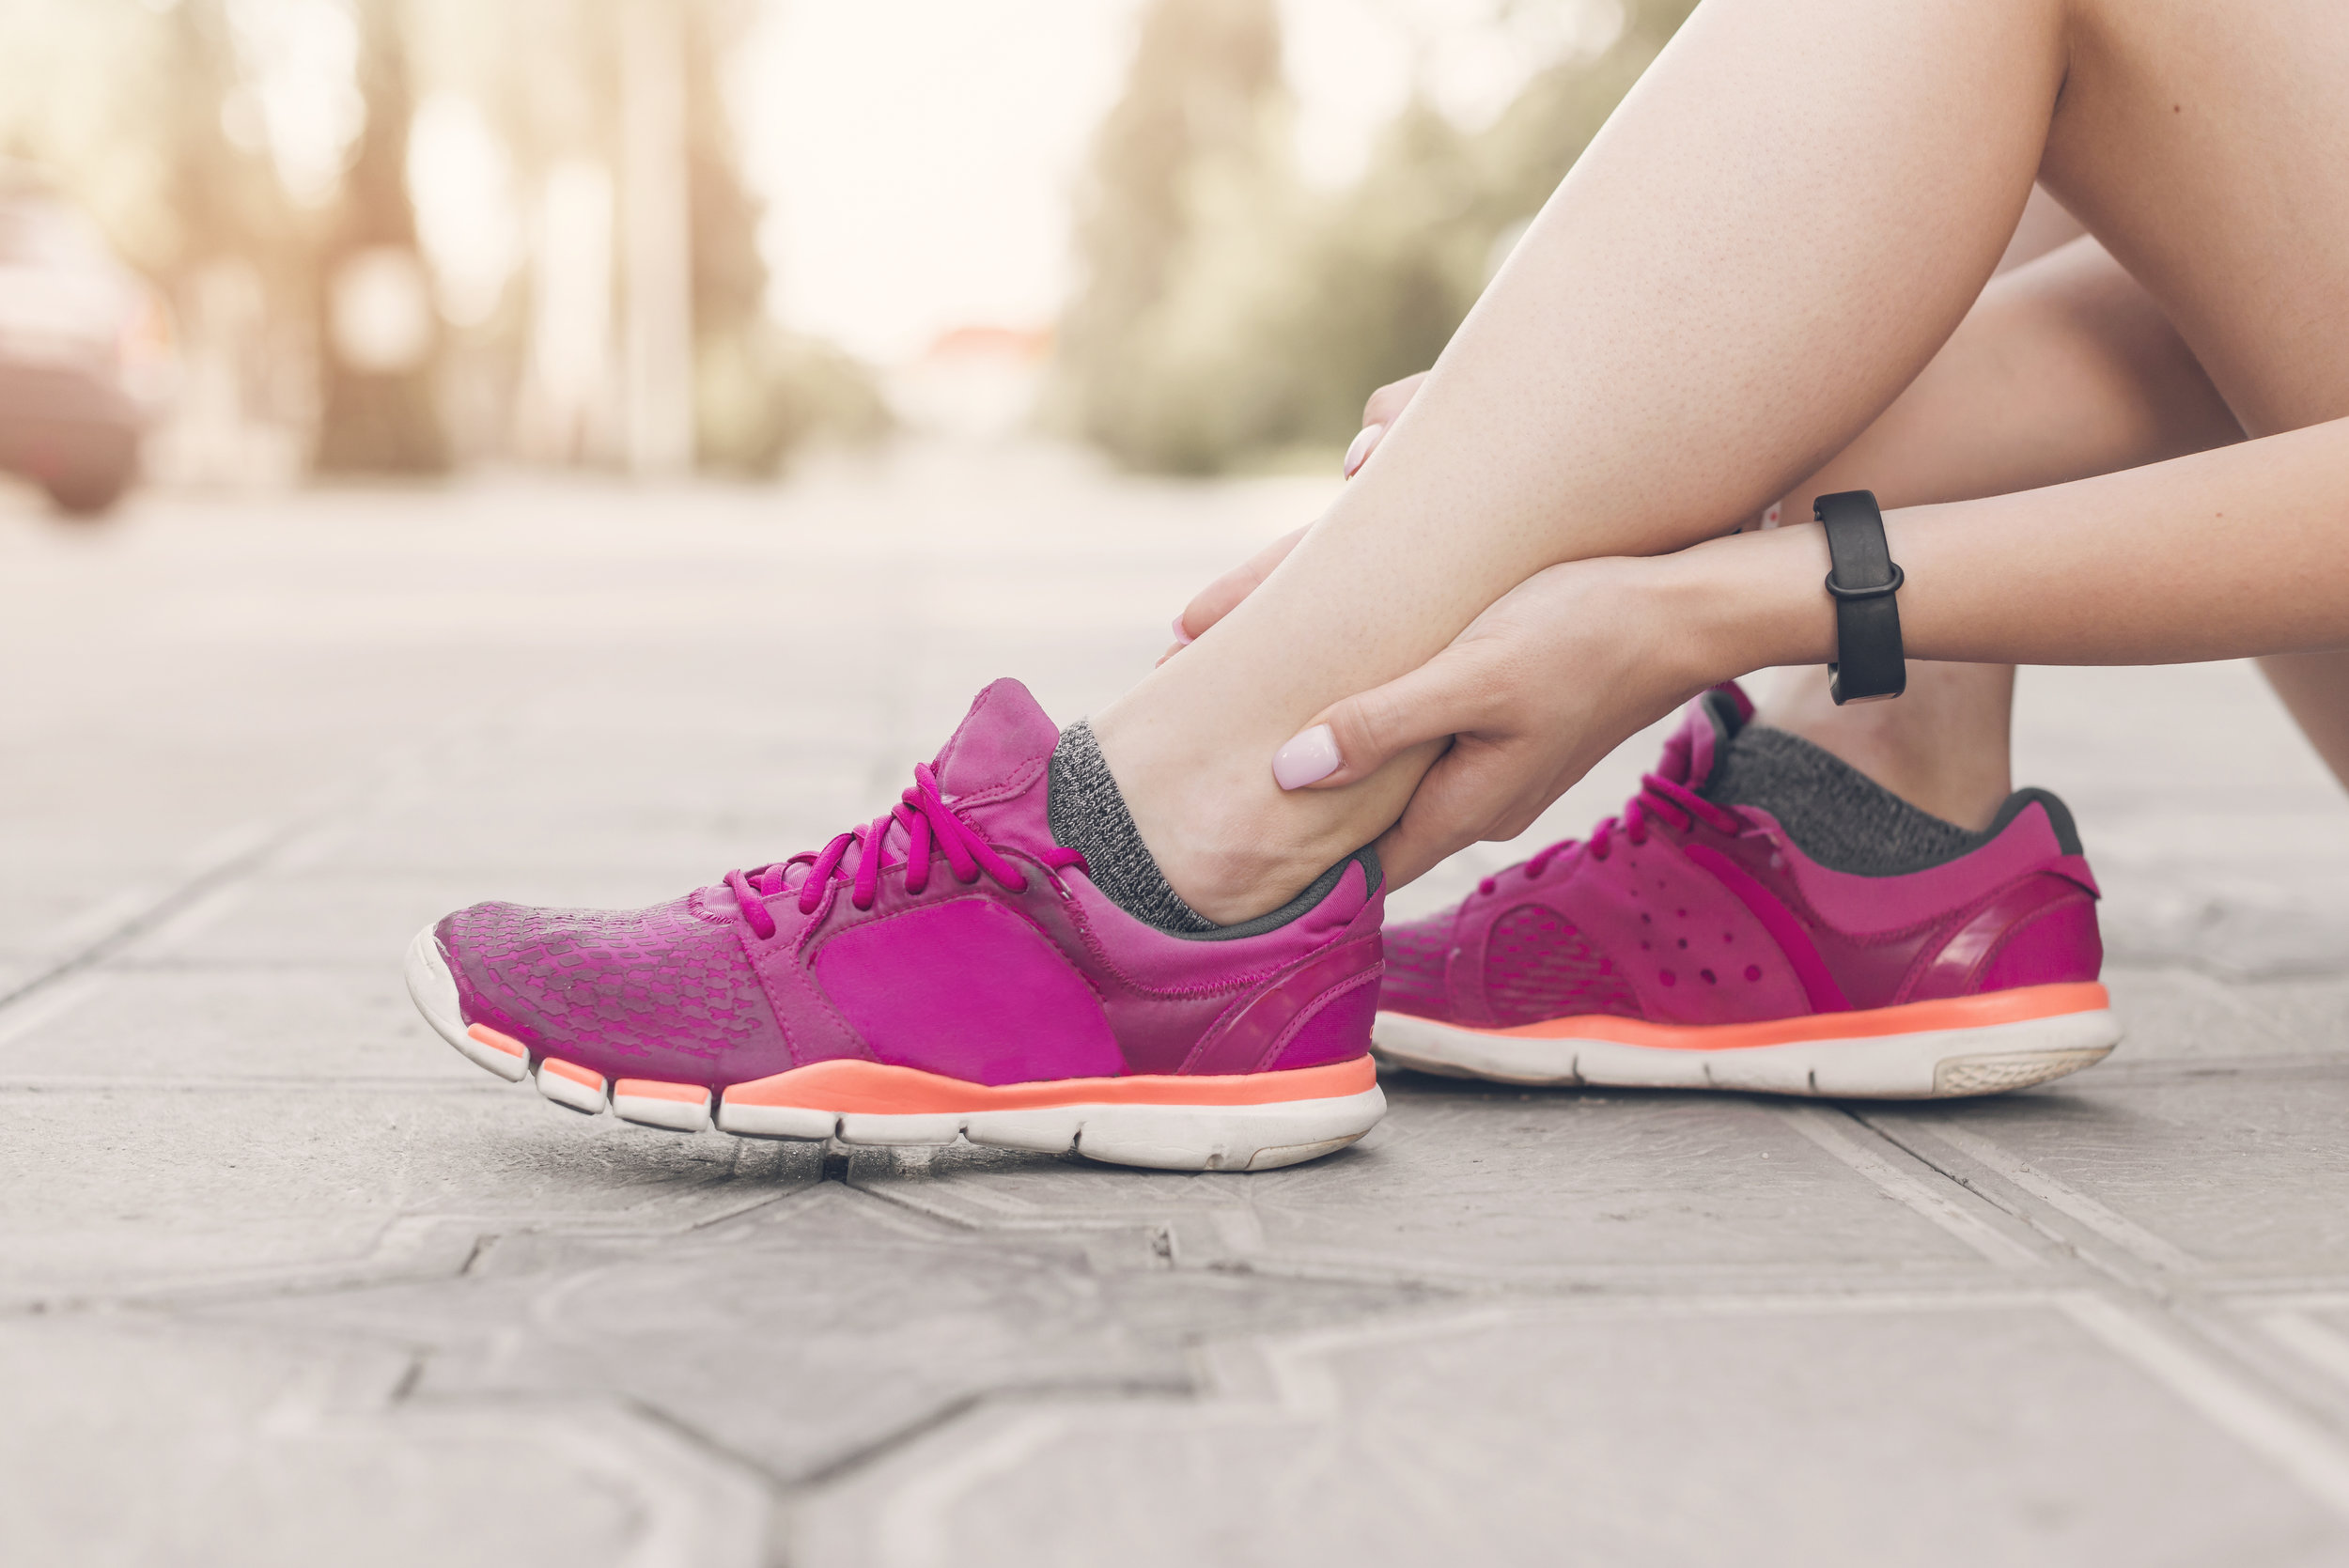 5 Reasons We Give Up on Our Fitness Goals (And How to Fight Back)